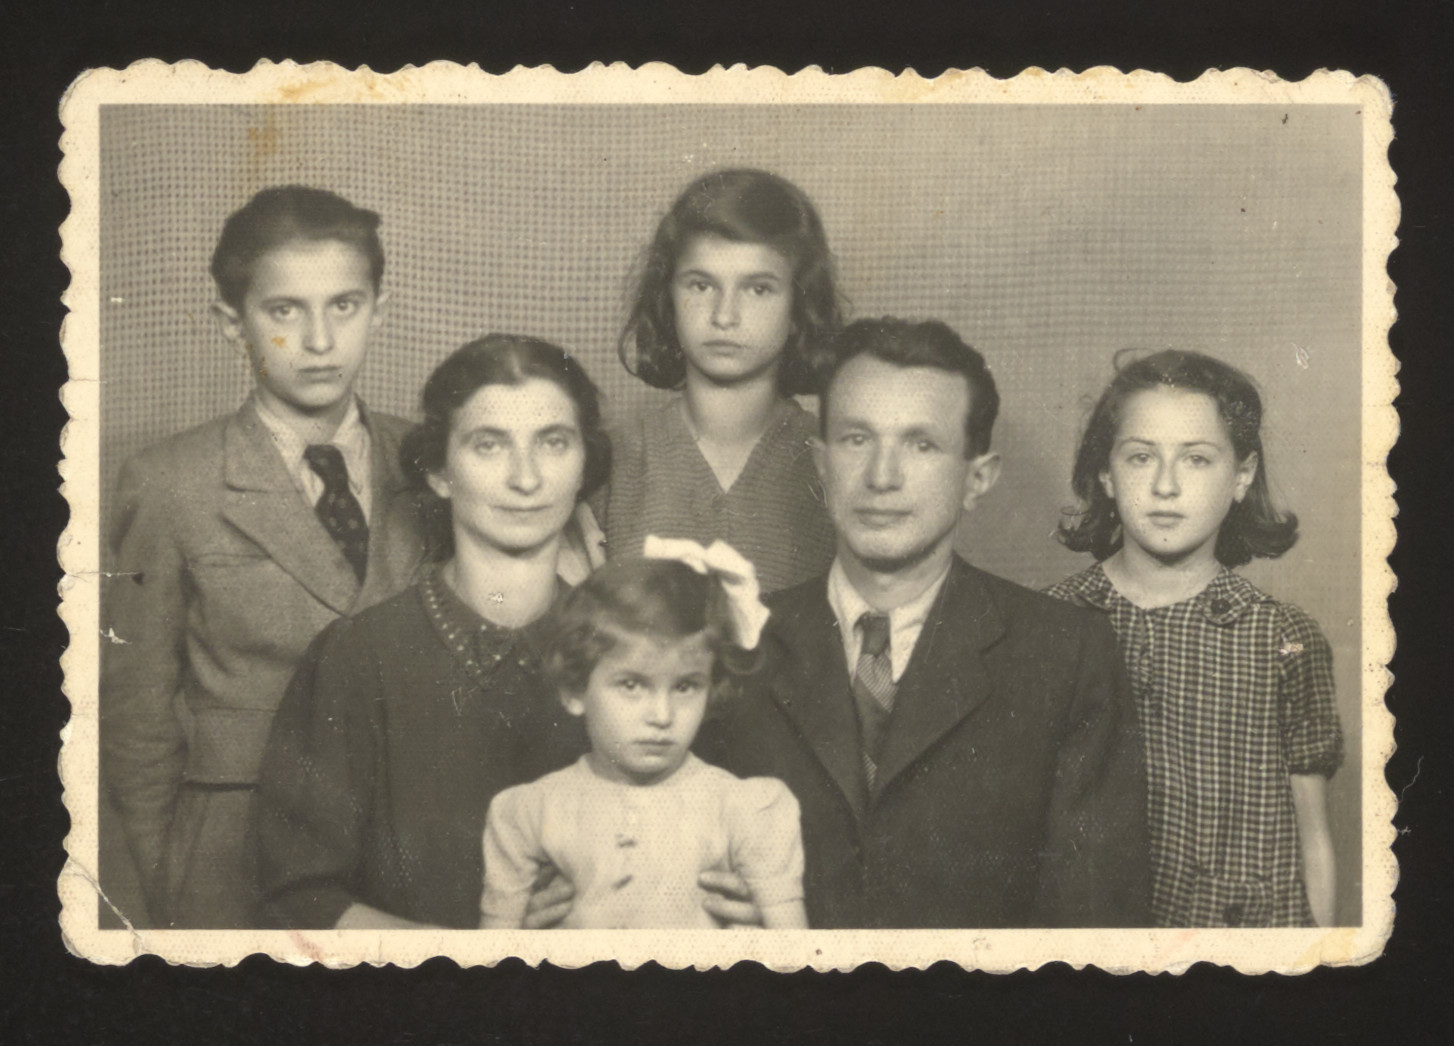 Portrait of a Jewish family in Budapest after liberation.   Pictured from left to right are Arthur, Czarna, Bronia, Henia, and Simon Spielman and their cousin Miriam Galitzer.